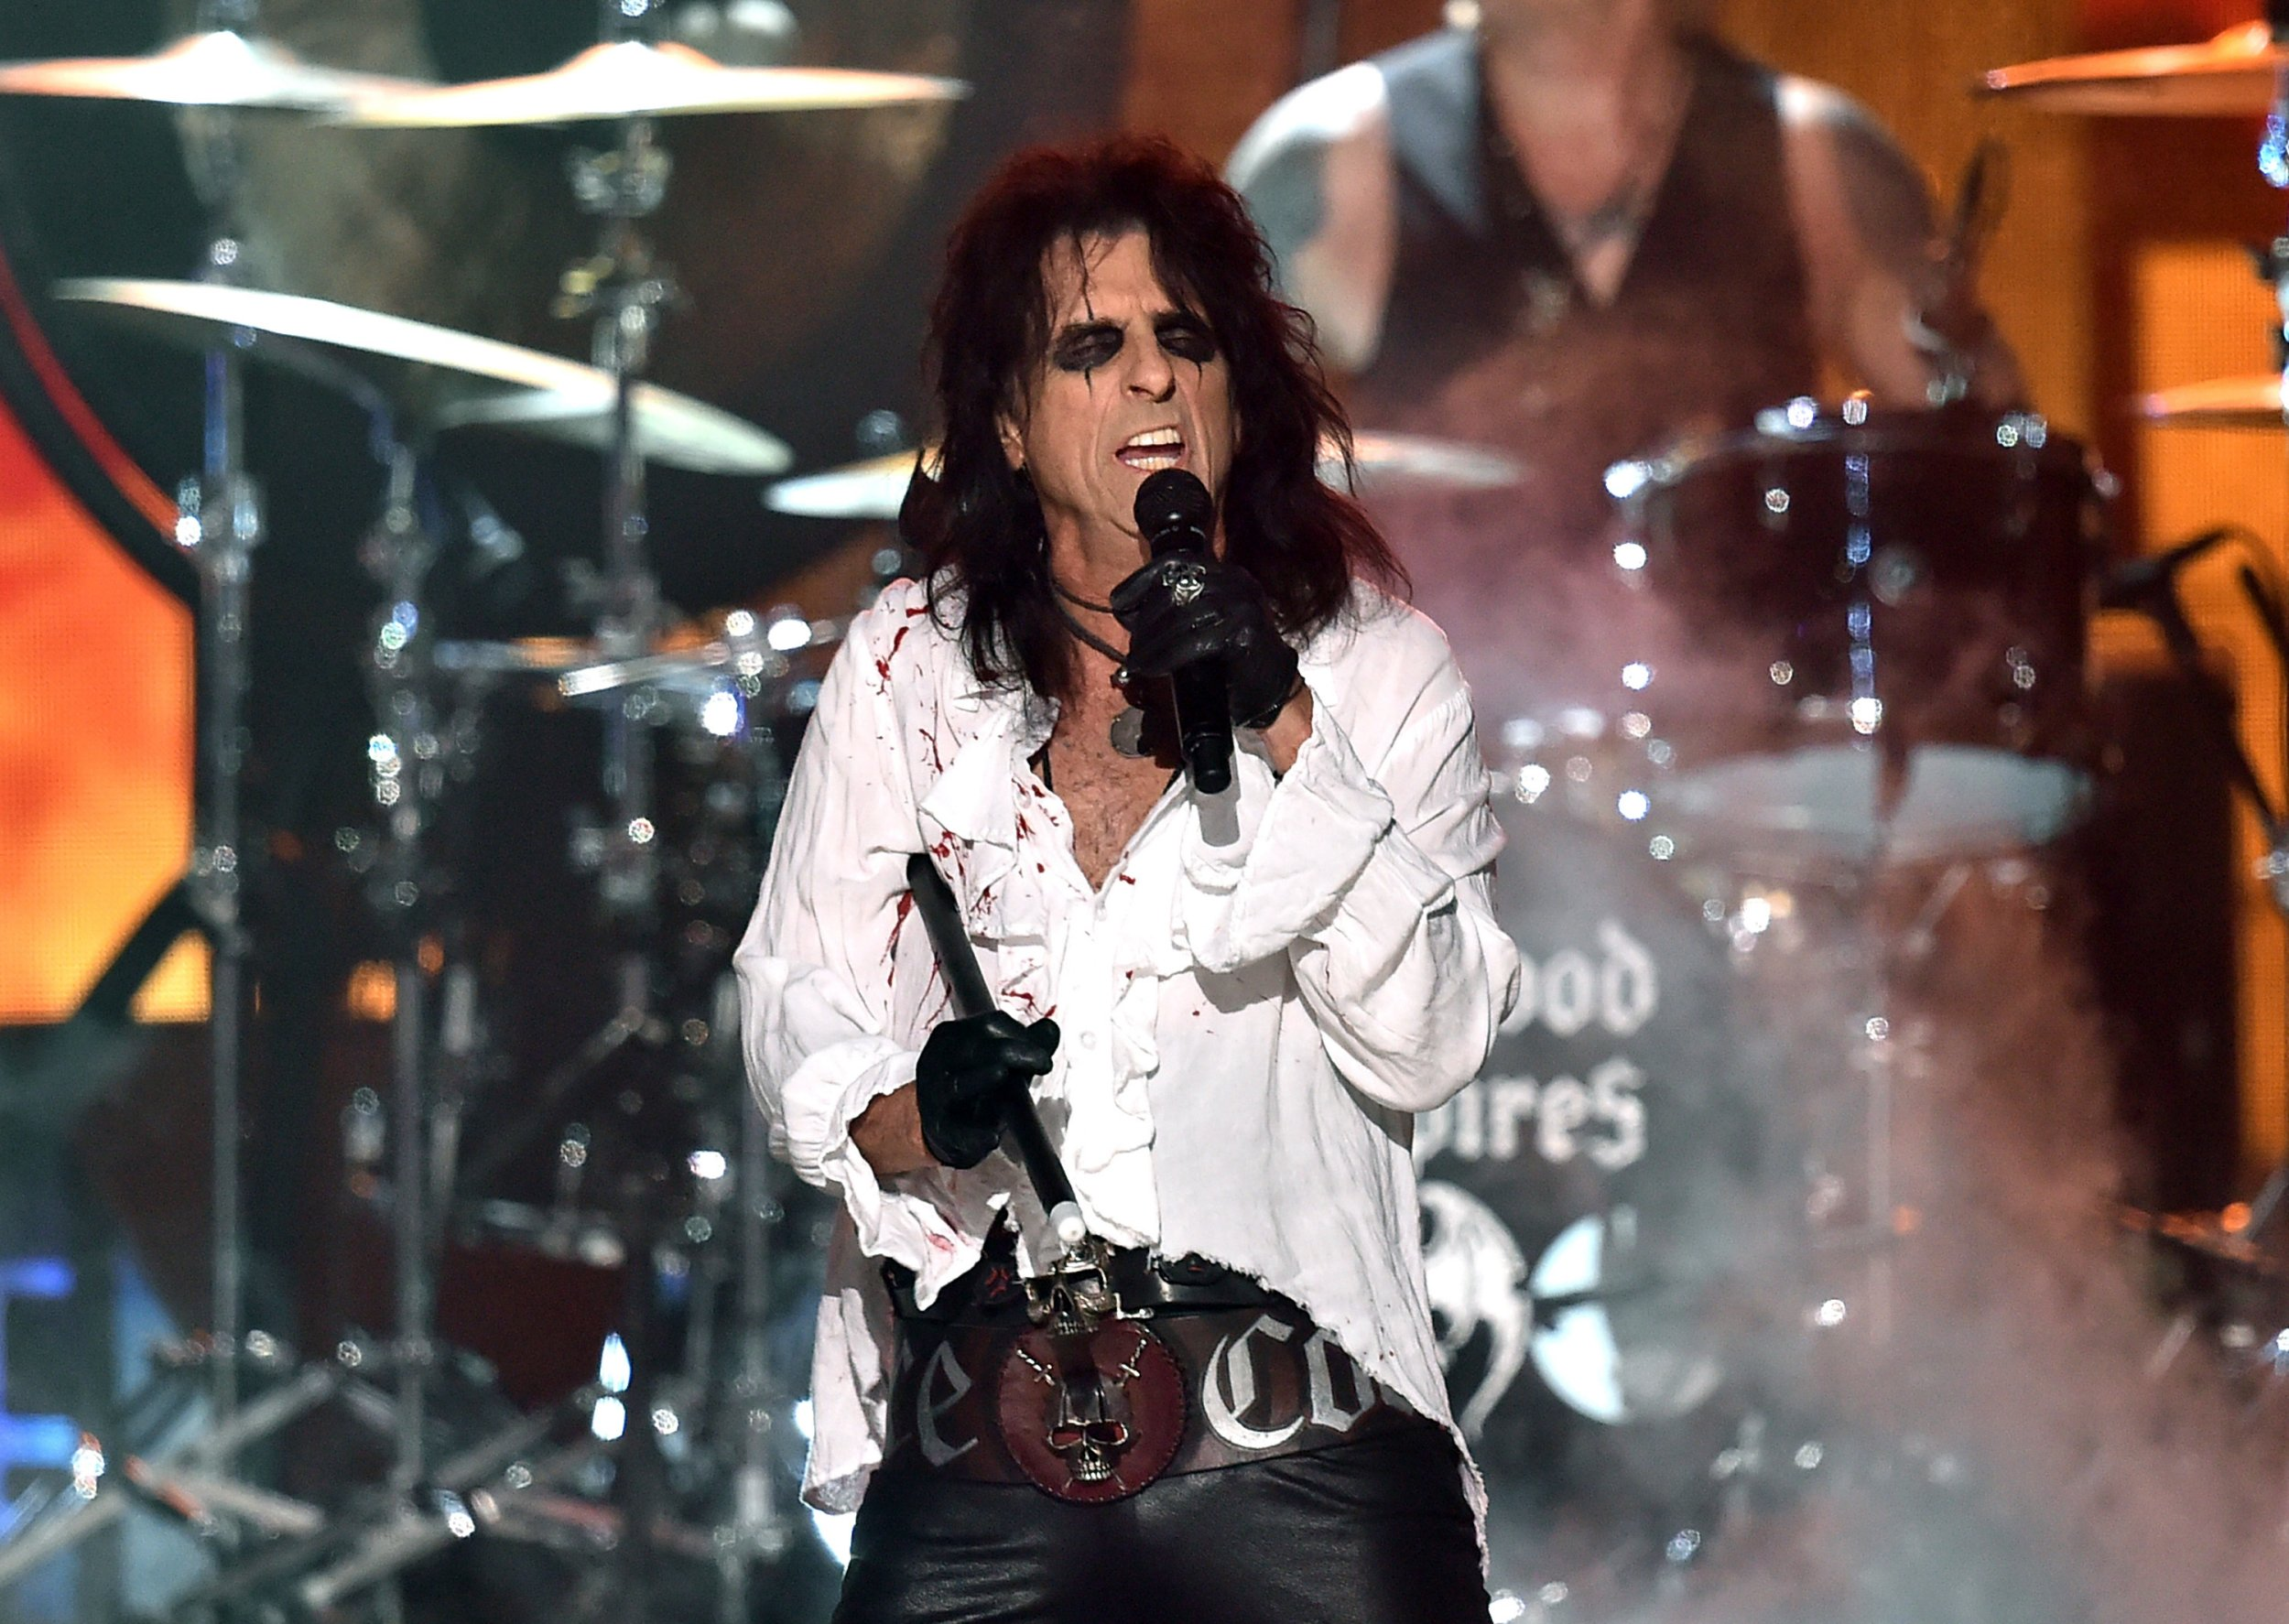 Alice Cooper is heading on an arena tour in 2017